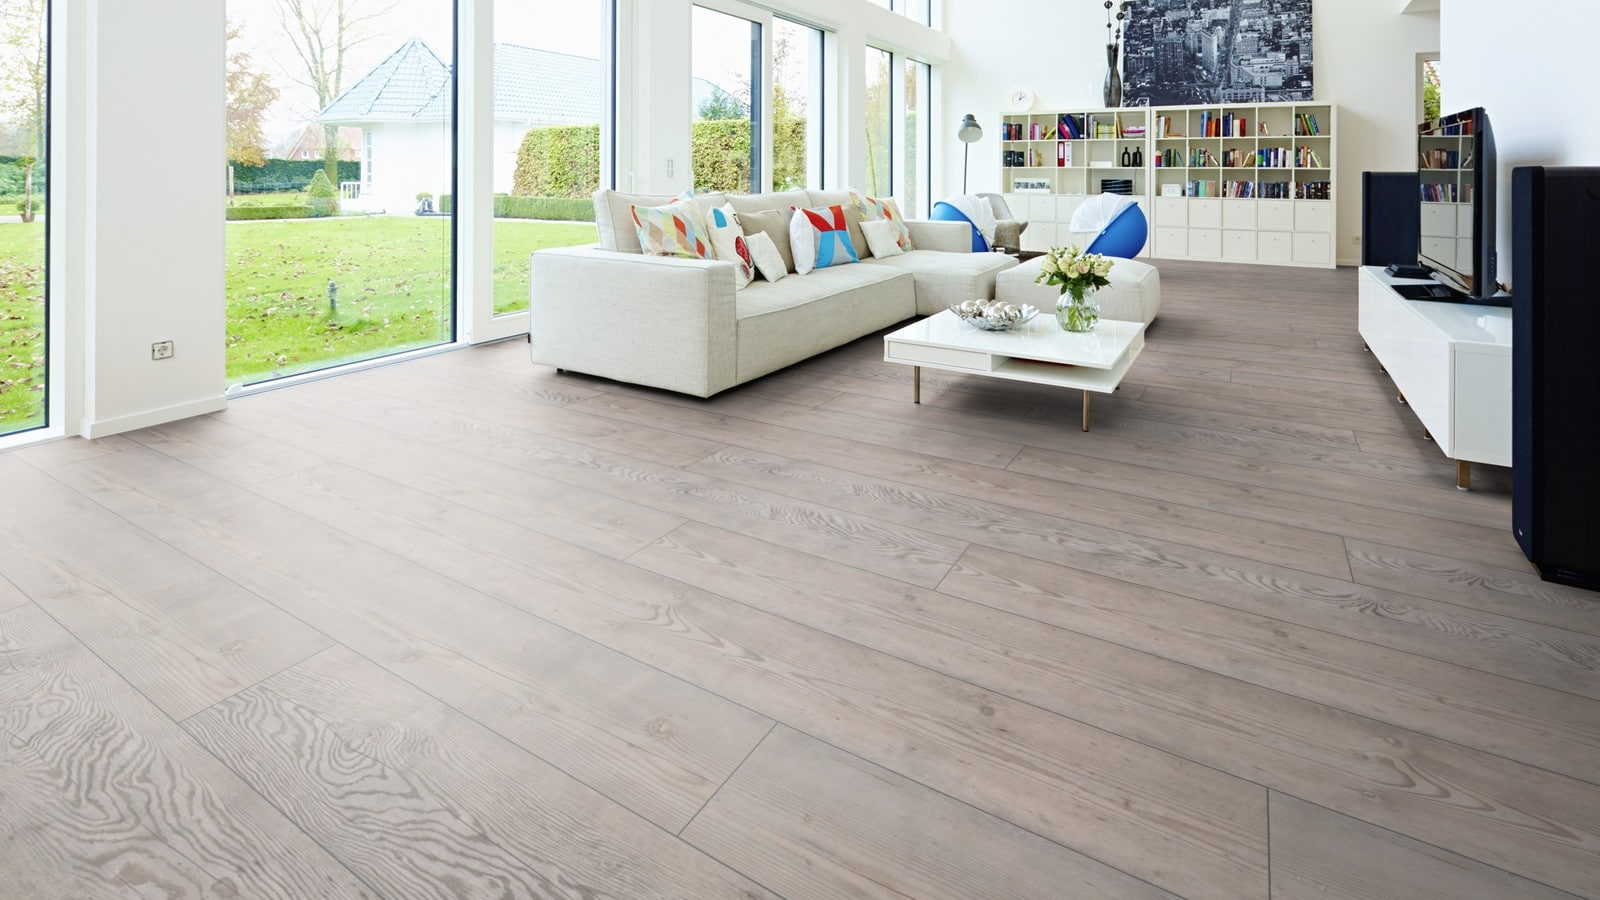 Le11 ter hürne pine grey laminate long plank living room